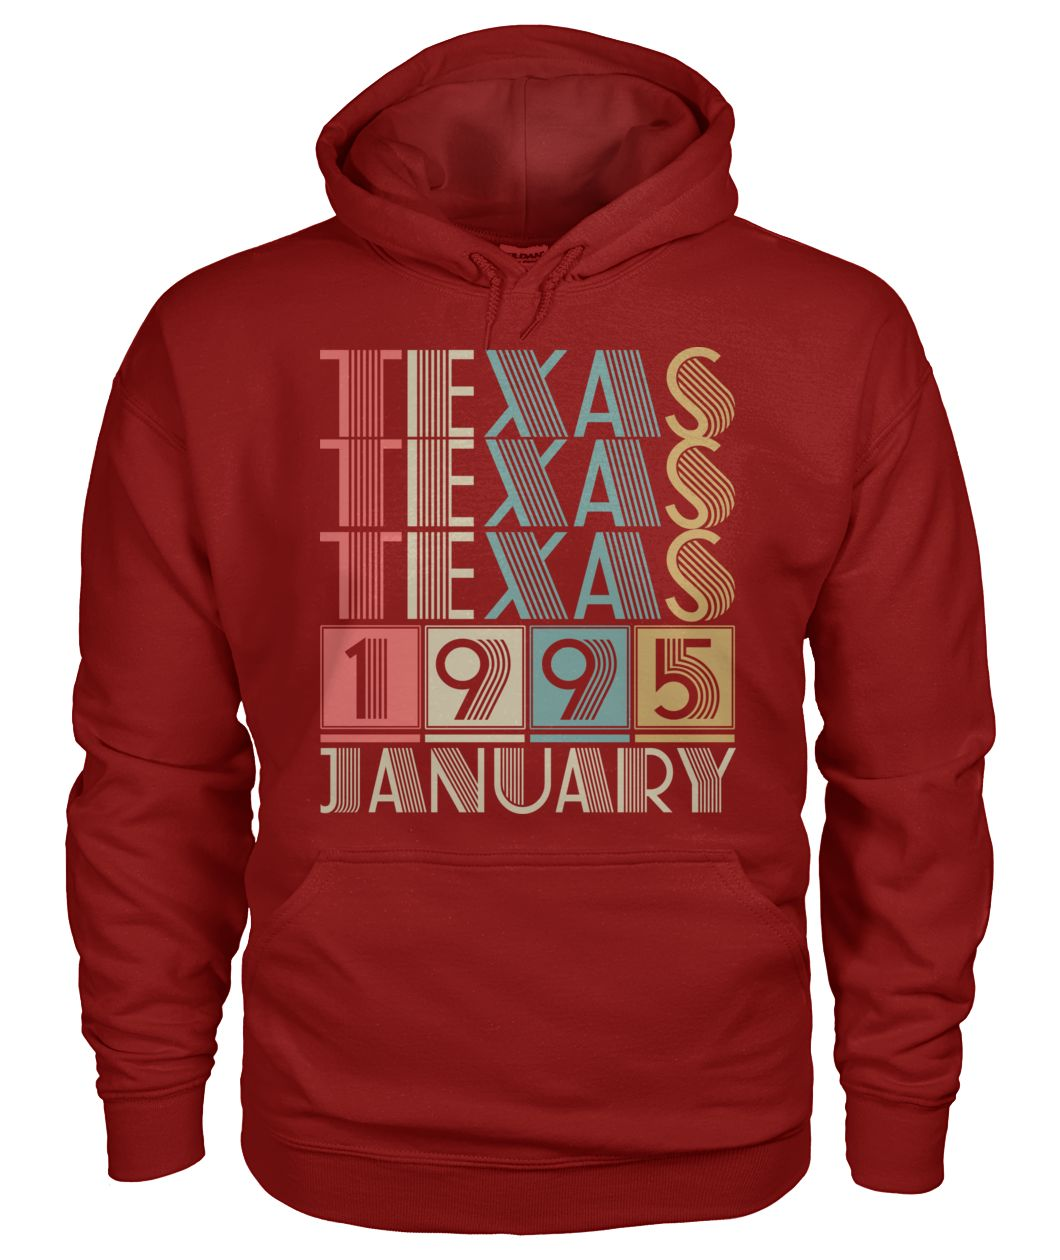 Born in Texas in January 1995 t shirt-Short Sleeves - TEEHOT.COM